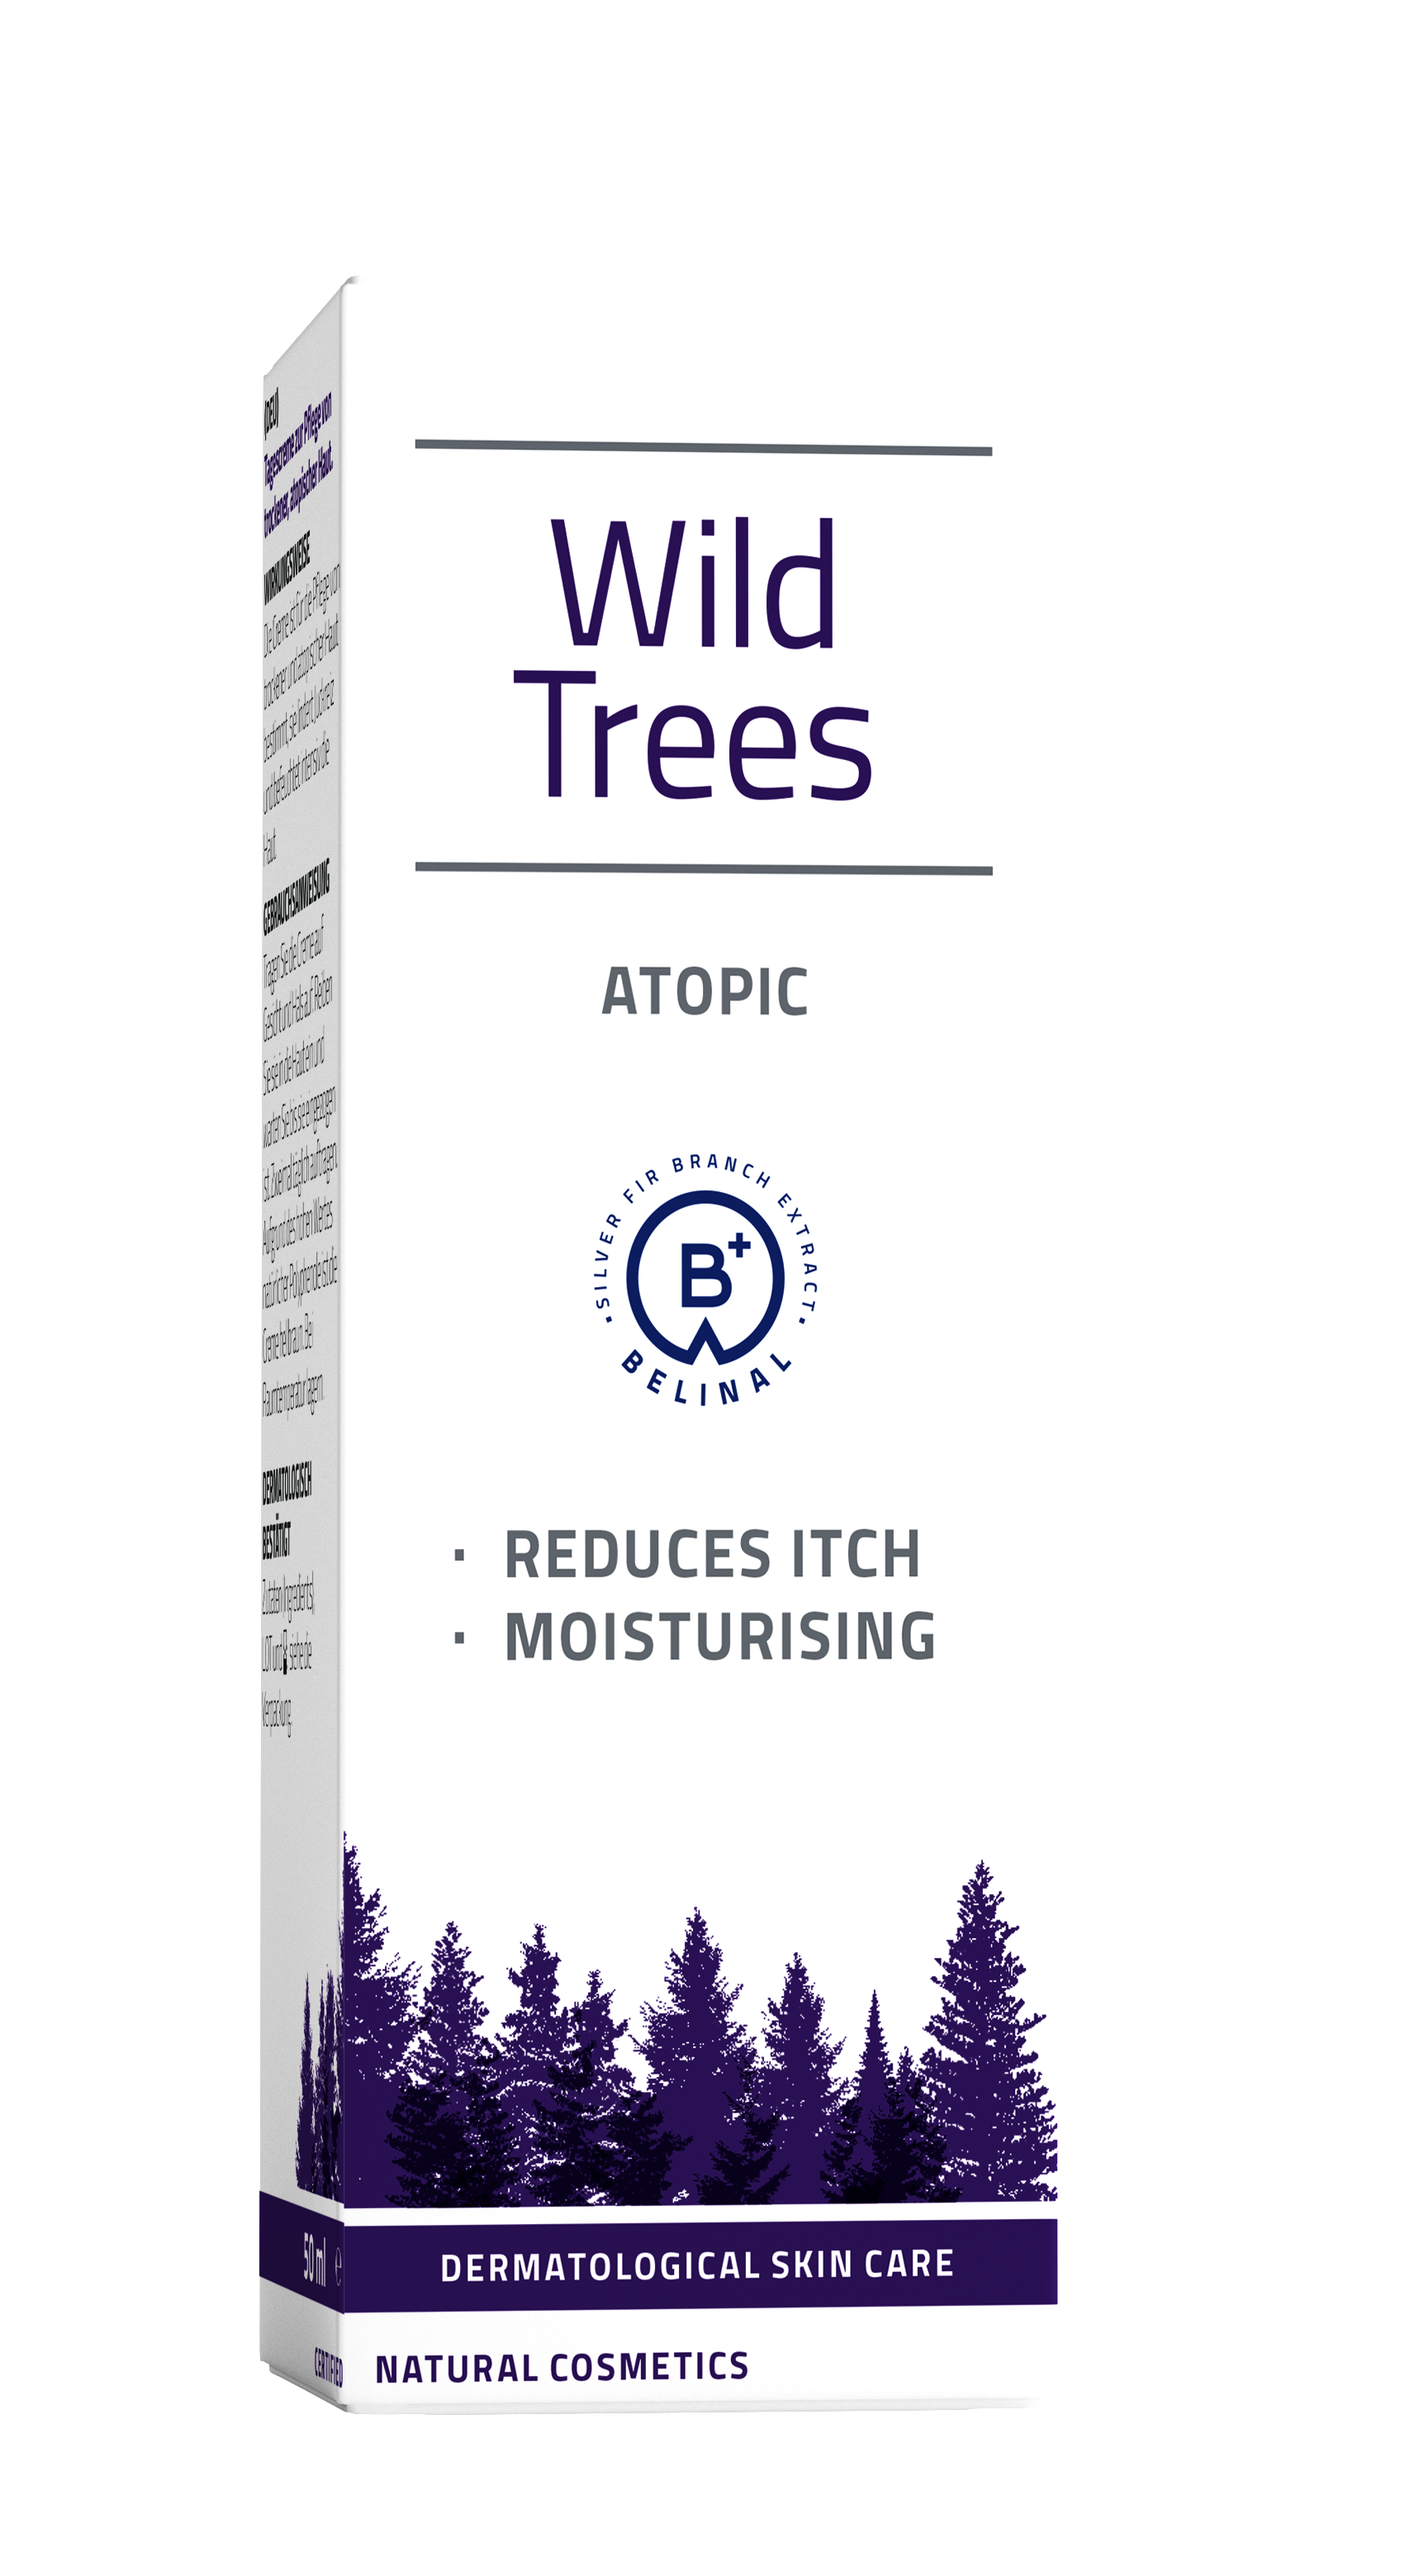 wild trees atopic - silver fir - moisturizes dry skin - relieves itching - redness - improves skin barrier - accelerates skin regeneration - atopic dermatitis - psoriasis